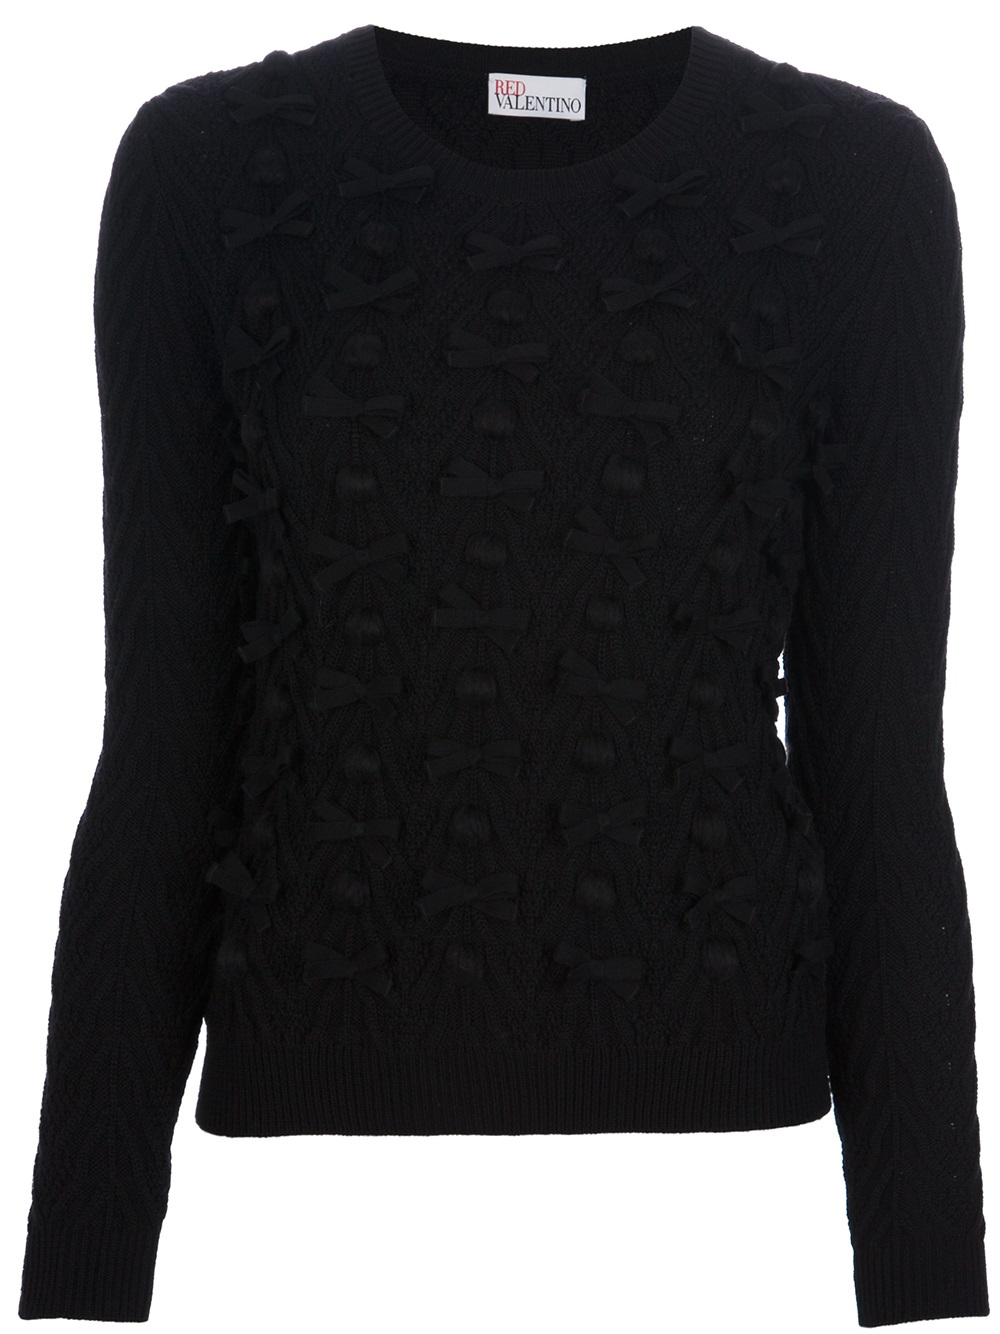 Red valentino Bobble Knit Bow Sweater in Black | Lyst